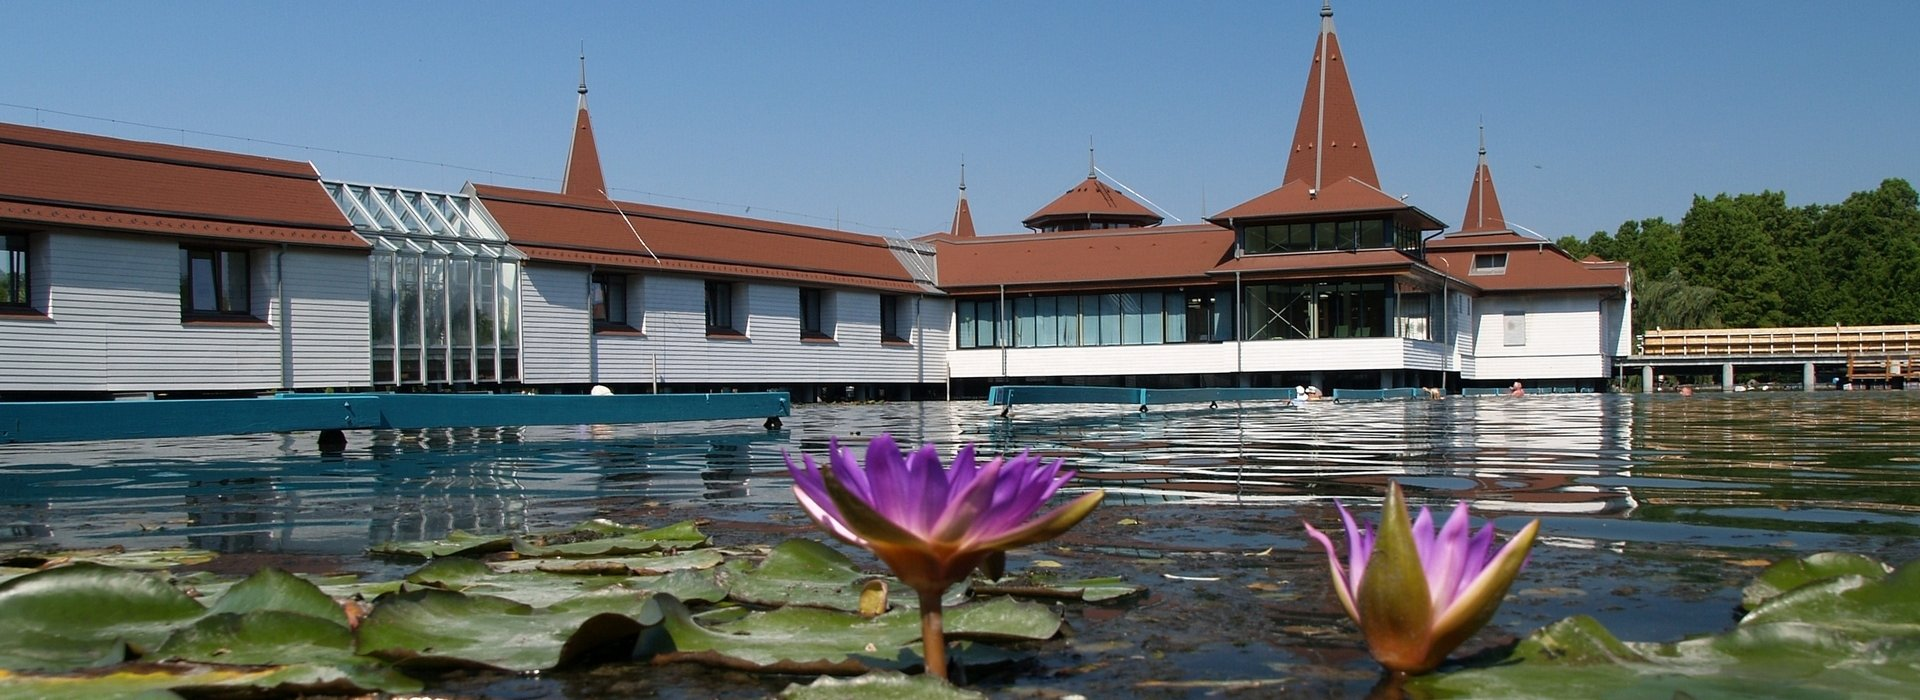 Municipal Medicinal Spa and Bathing Complex of Csongrád